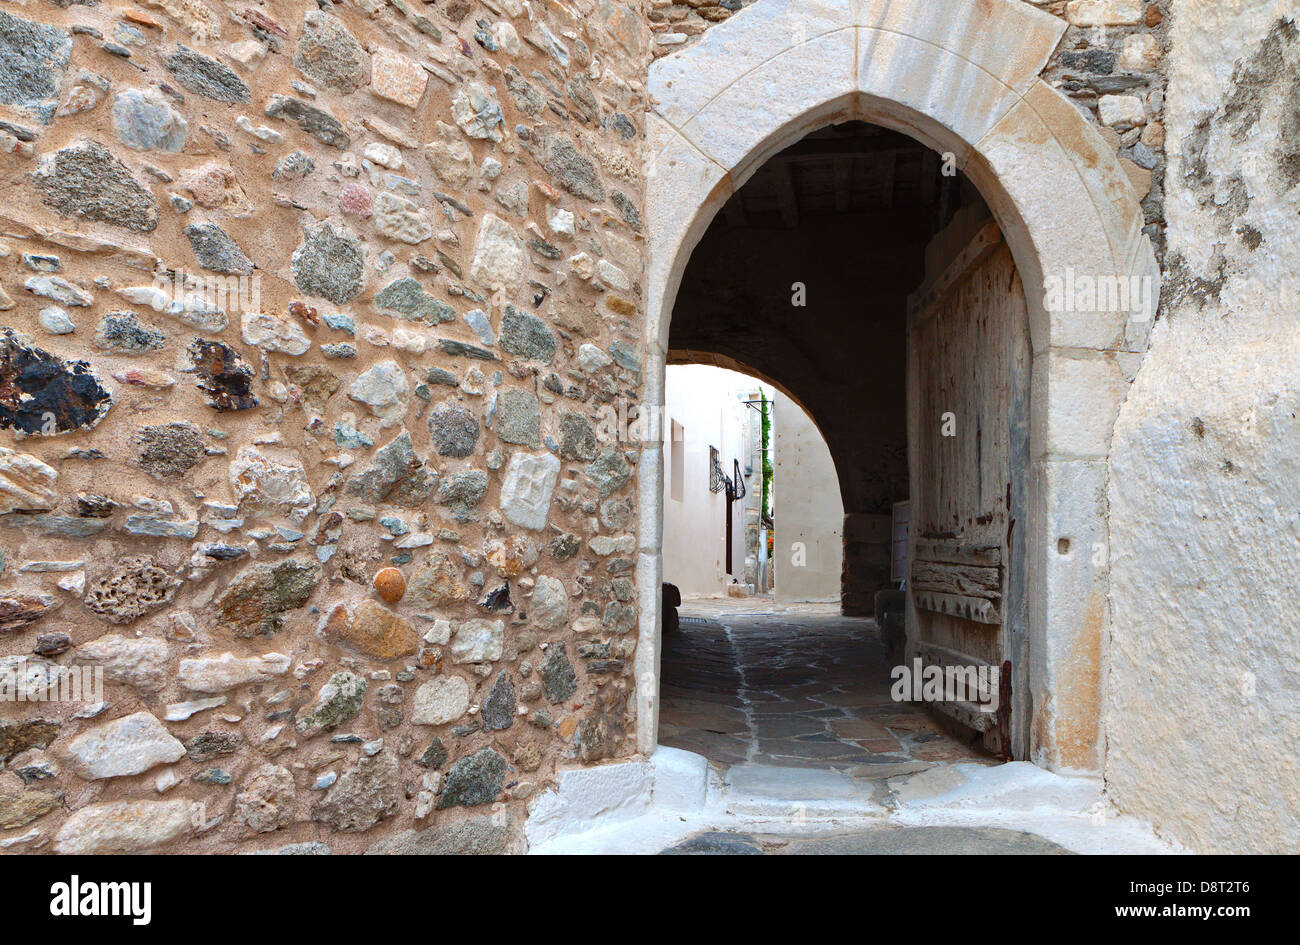 The medieval city of Naxos island in Greece - Stock Image